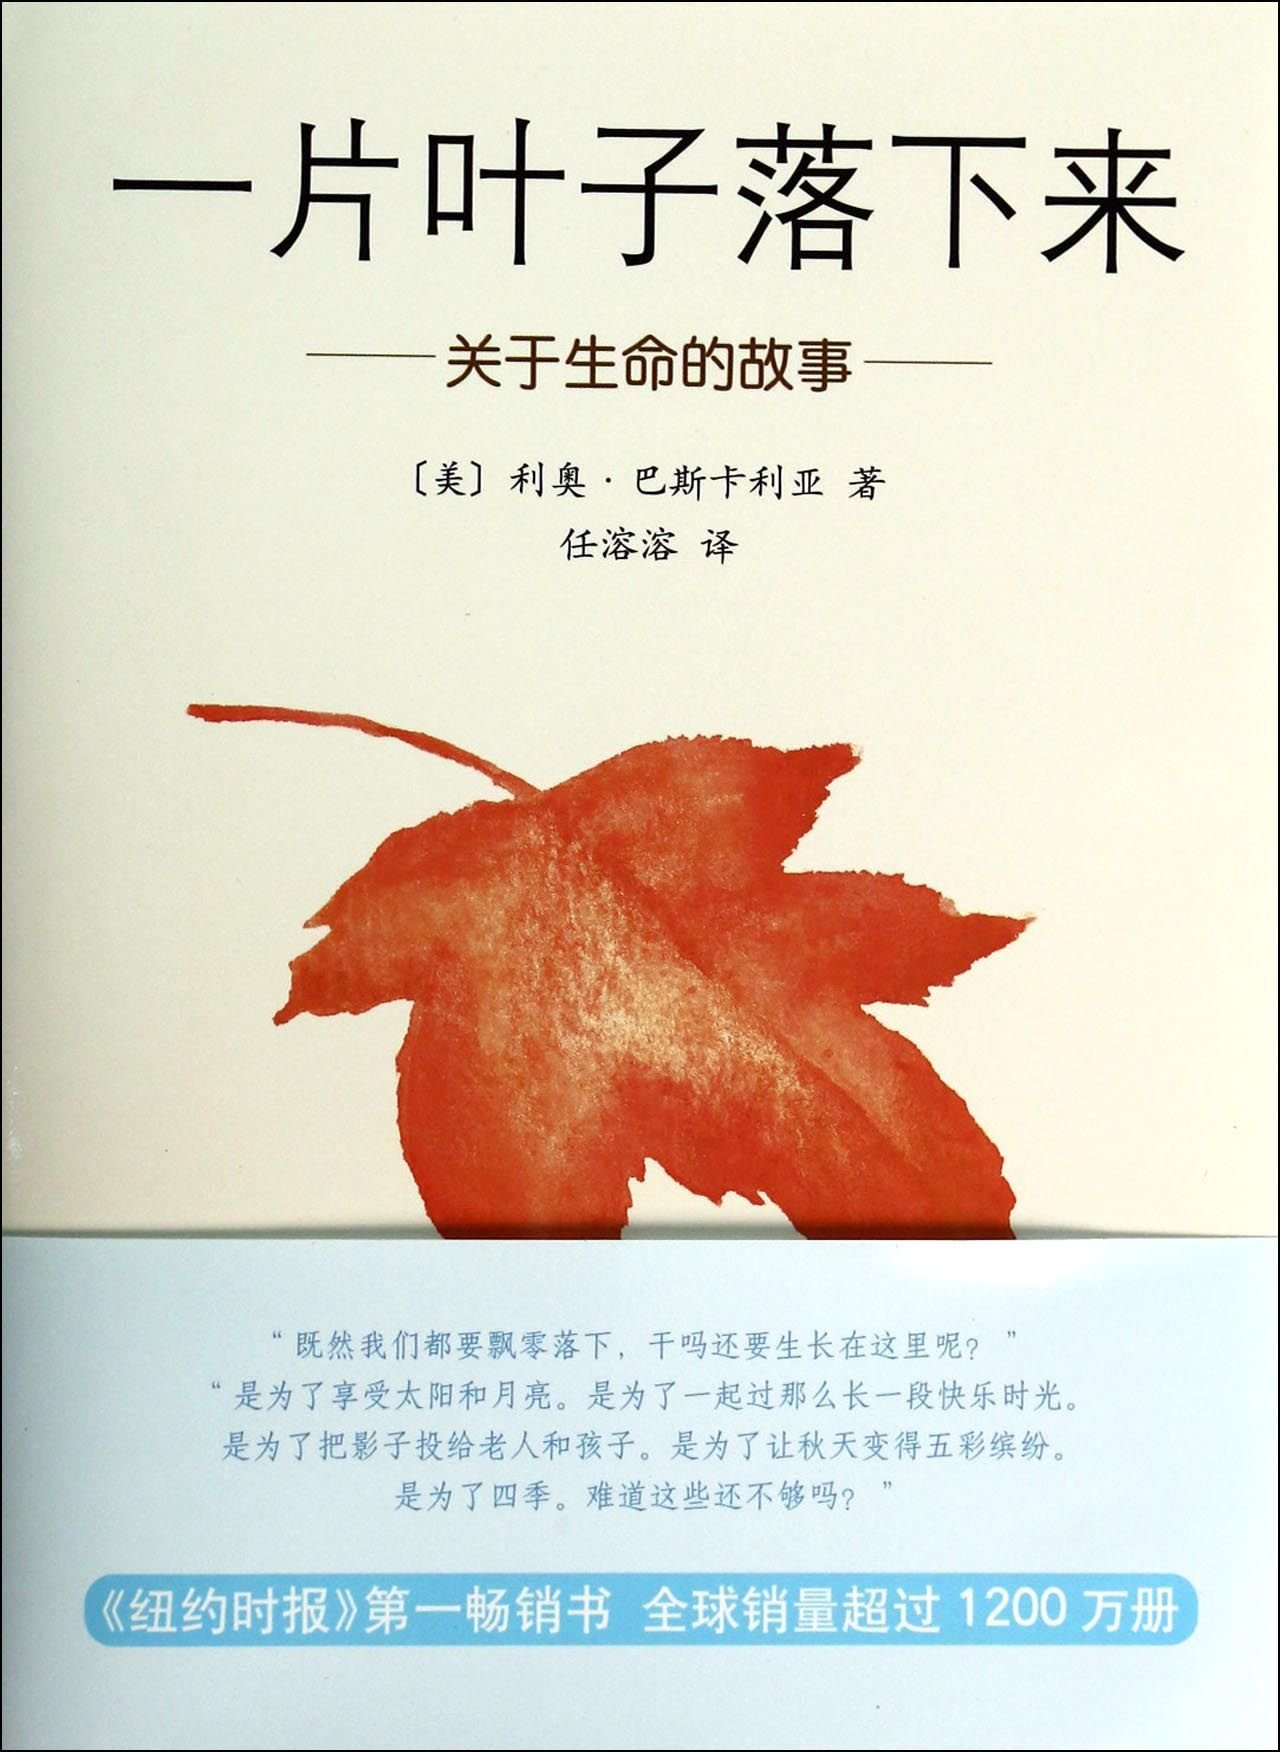 The Fall of Freddie the Leaf (Chinese Edition): Amazon.co.uk: Leo  Buscaglia: 9787544269629: Books